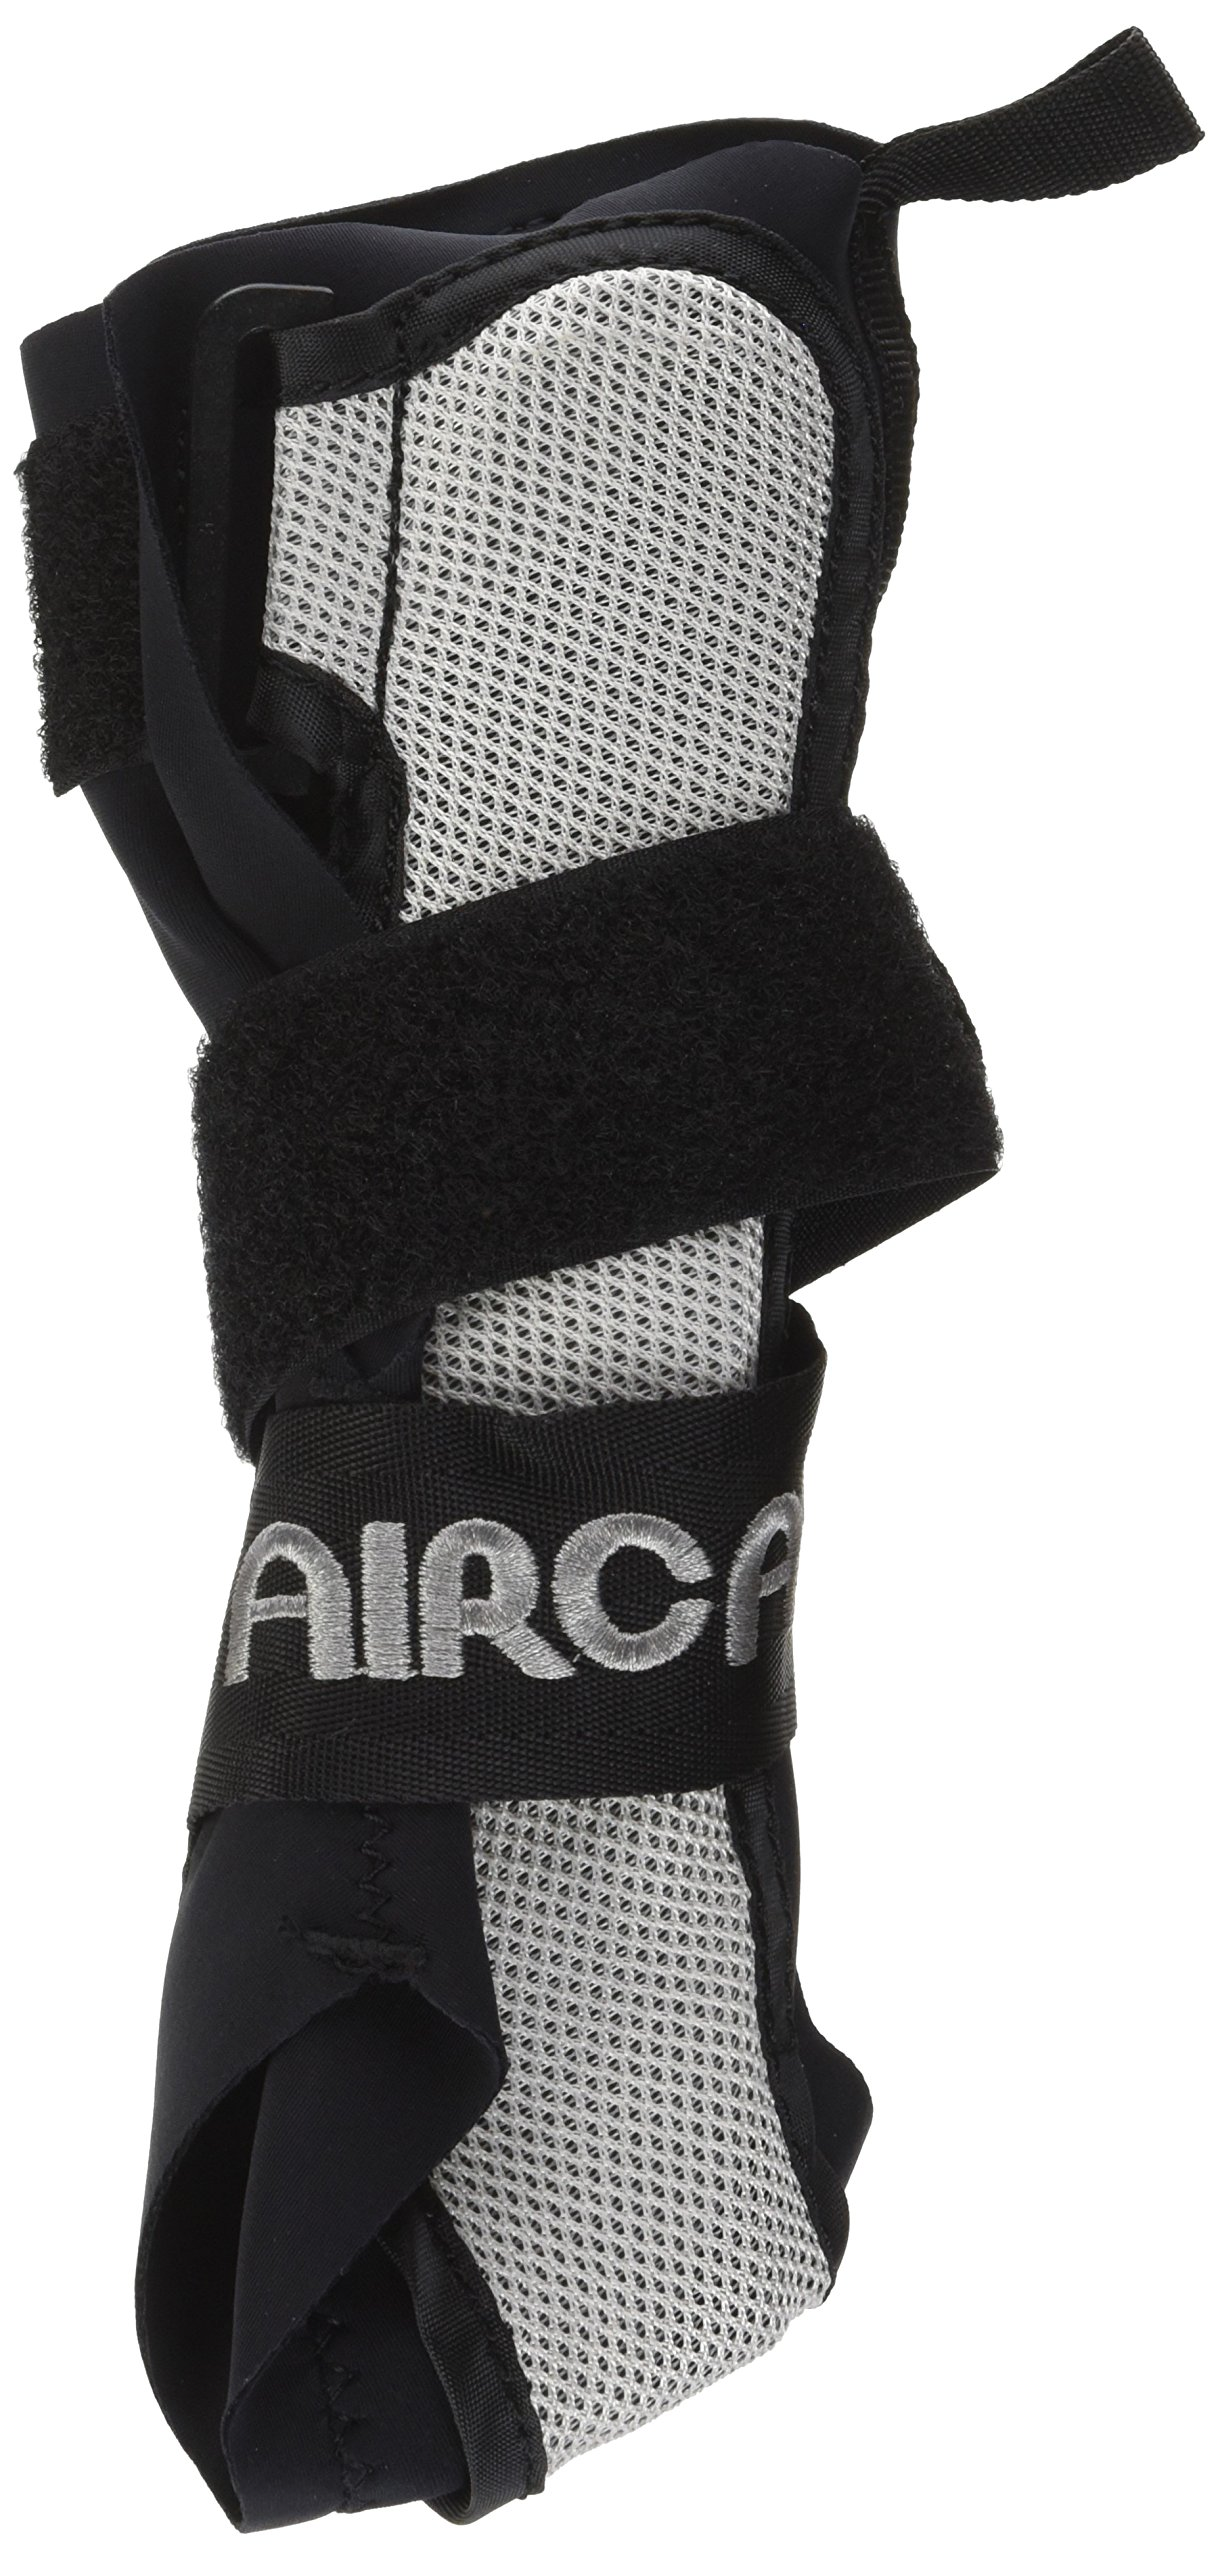 Aircast A60 Ankle Support Brace, Right Foot, Black, Small (Shoe Size: Men's 4 - 7 / Women's 5 - 8.5)